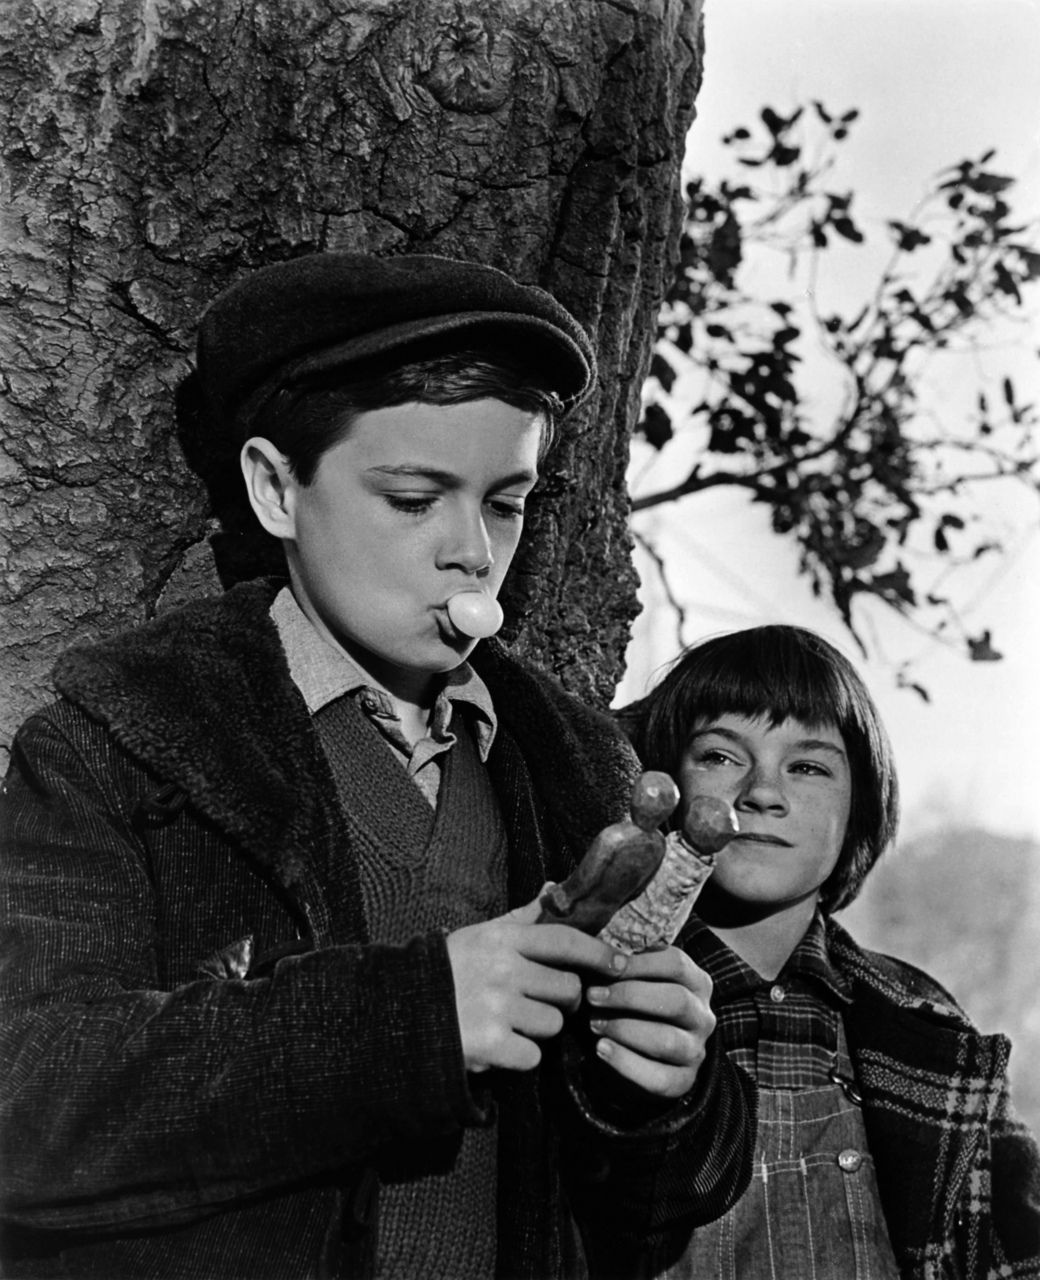 A present from boo radley to kill a mockingbird1962 icons to kill a mockingbird1962 biocorpaavc Choice Image